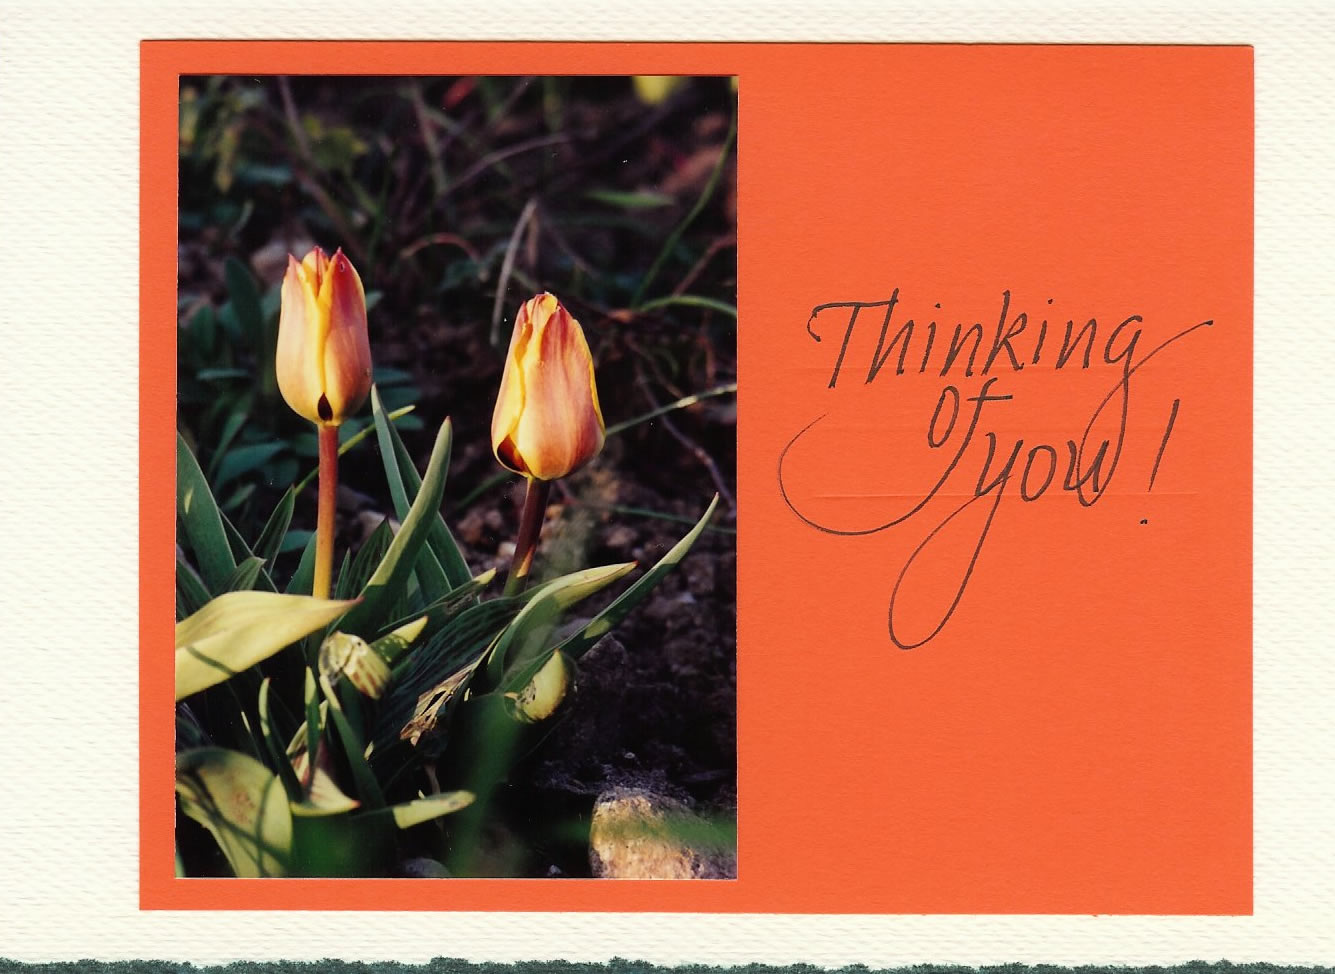 Patricia Williams (think of you card)